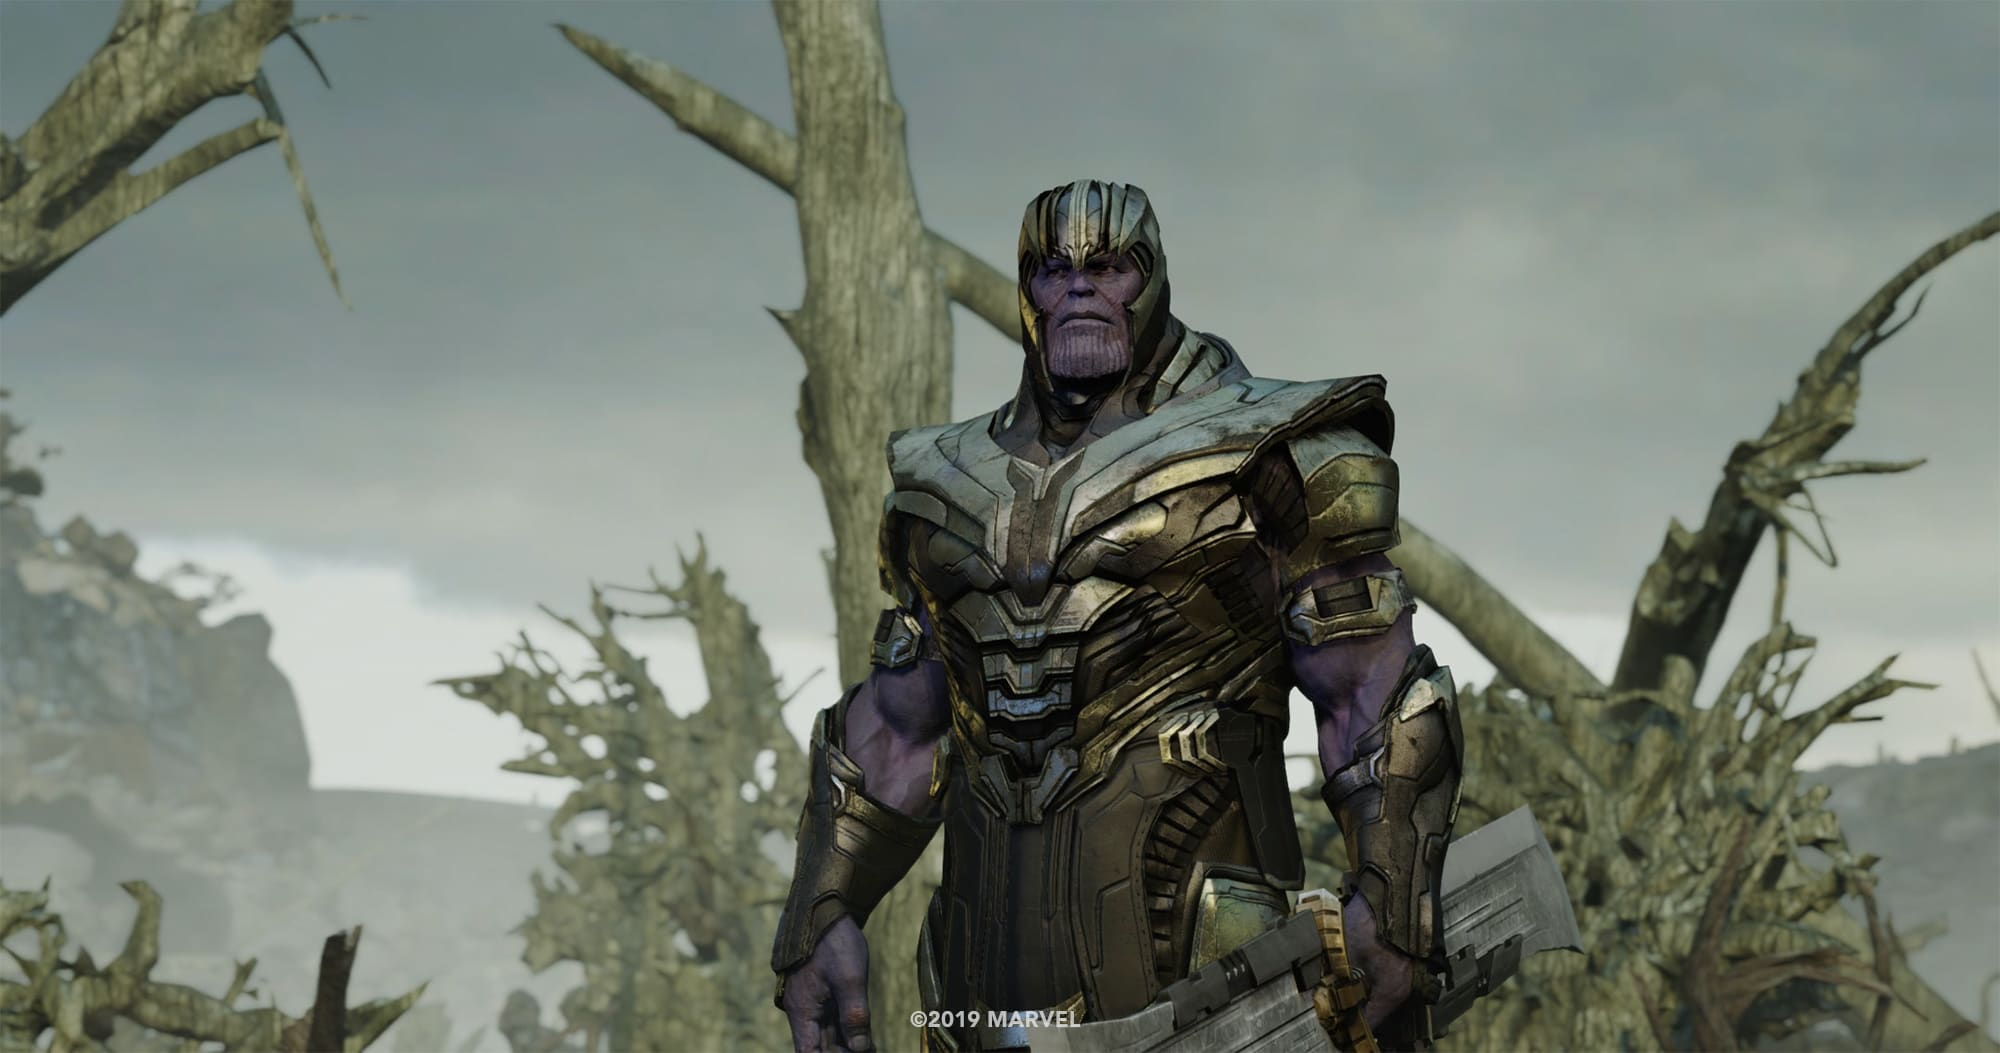 ENDGAME: The Remarkable Faces of Avengers: THANOS (Part 1